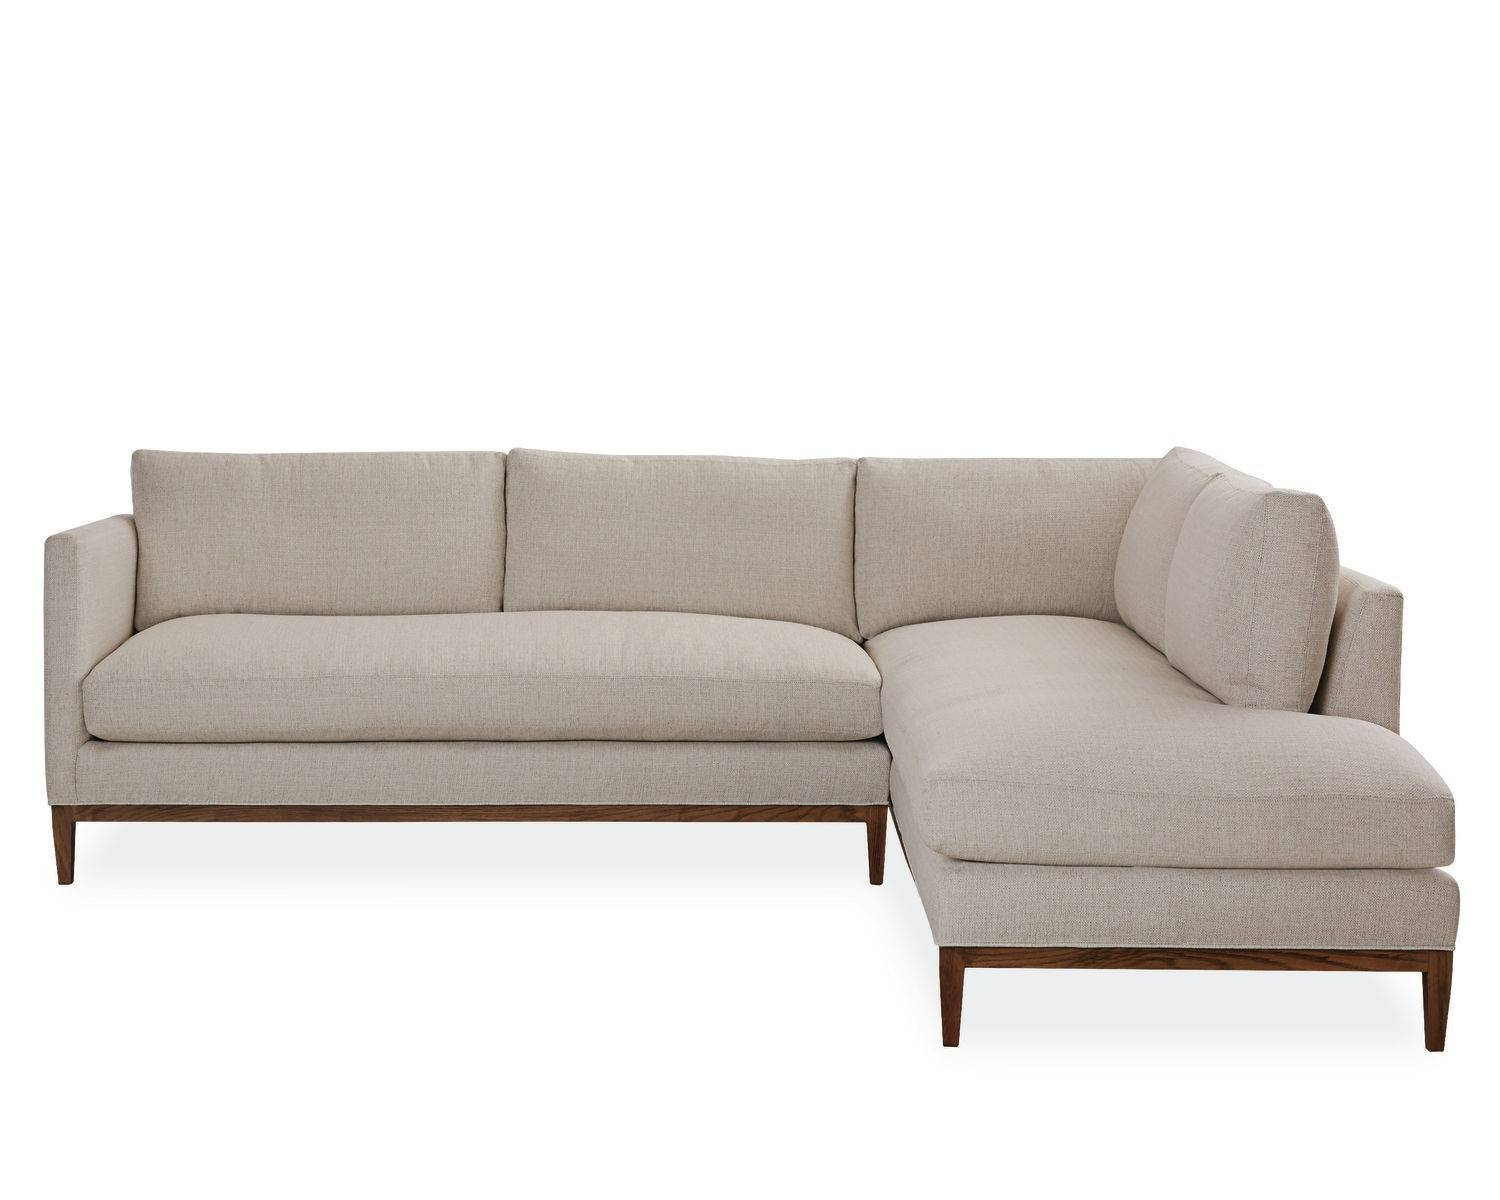 American Furniture   Palm Springs Chaise Sectional   Lee Industries pertaining to Lee Industries Sectional Sofa (Image 5 of 25)